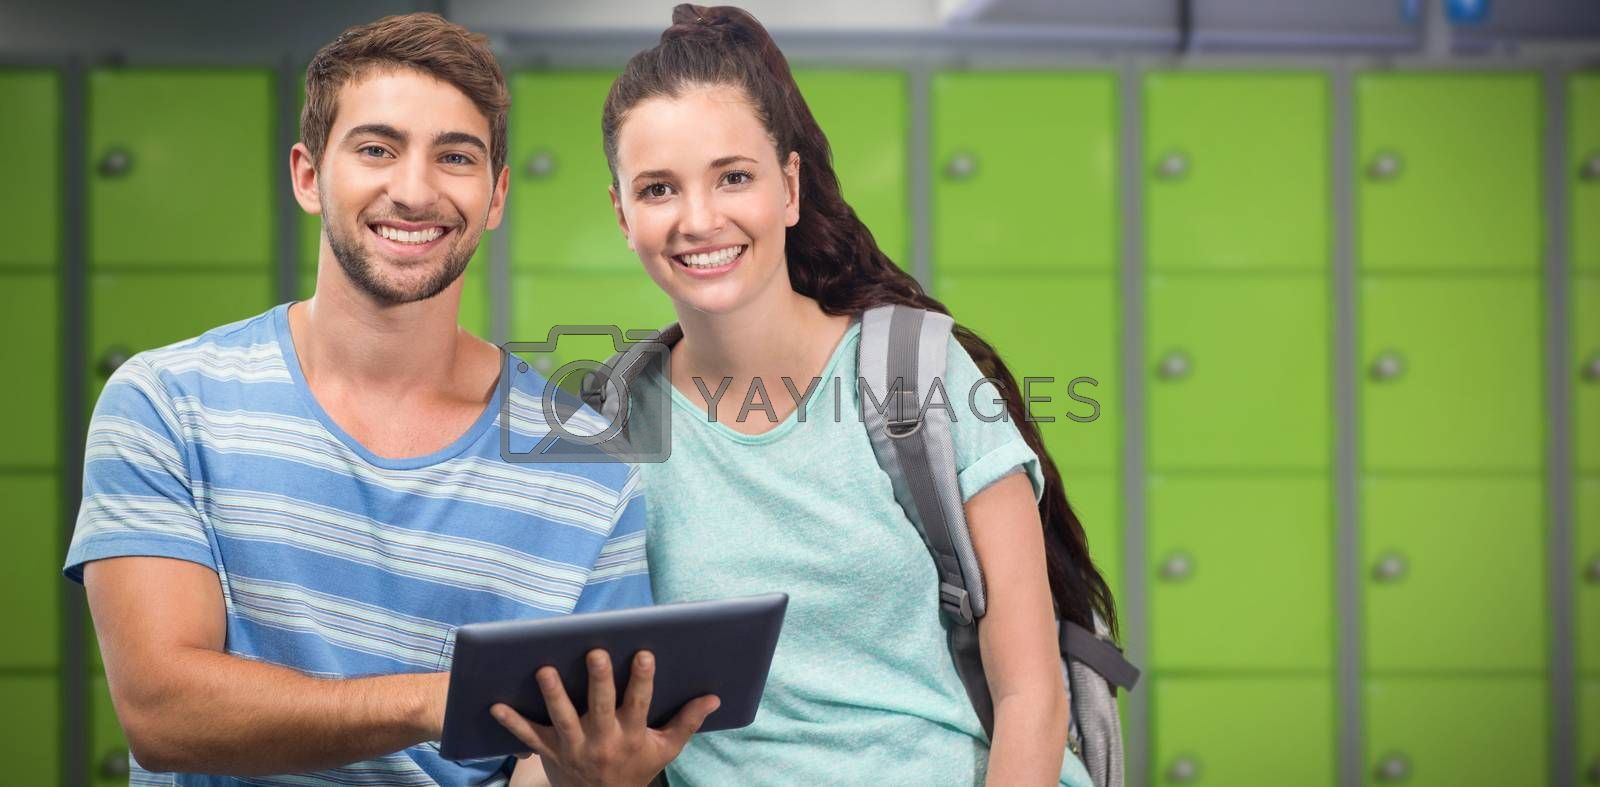 Composite image of students using tablet and smiling by Wavebreakmedia